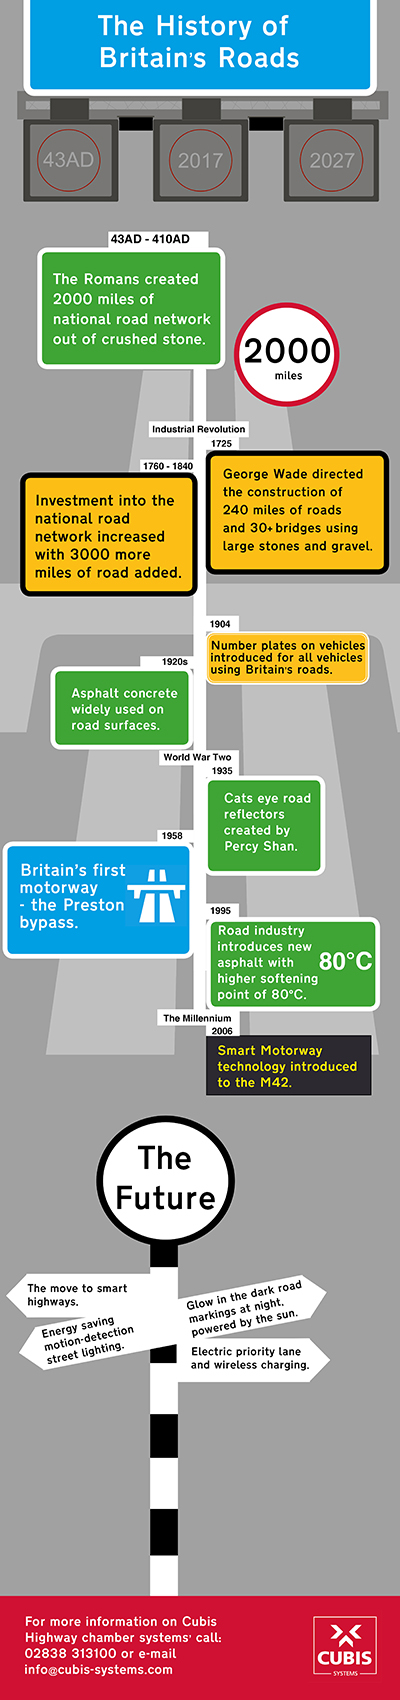 History of Britain's road infographic